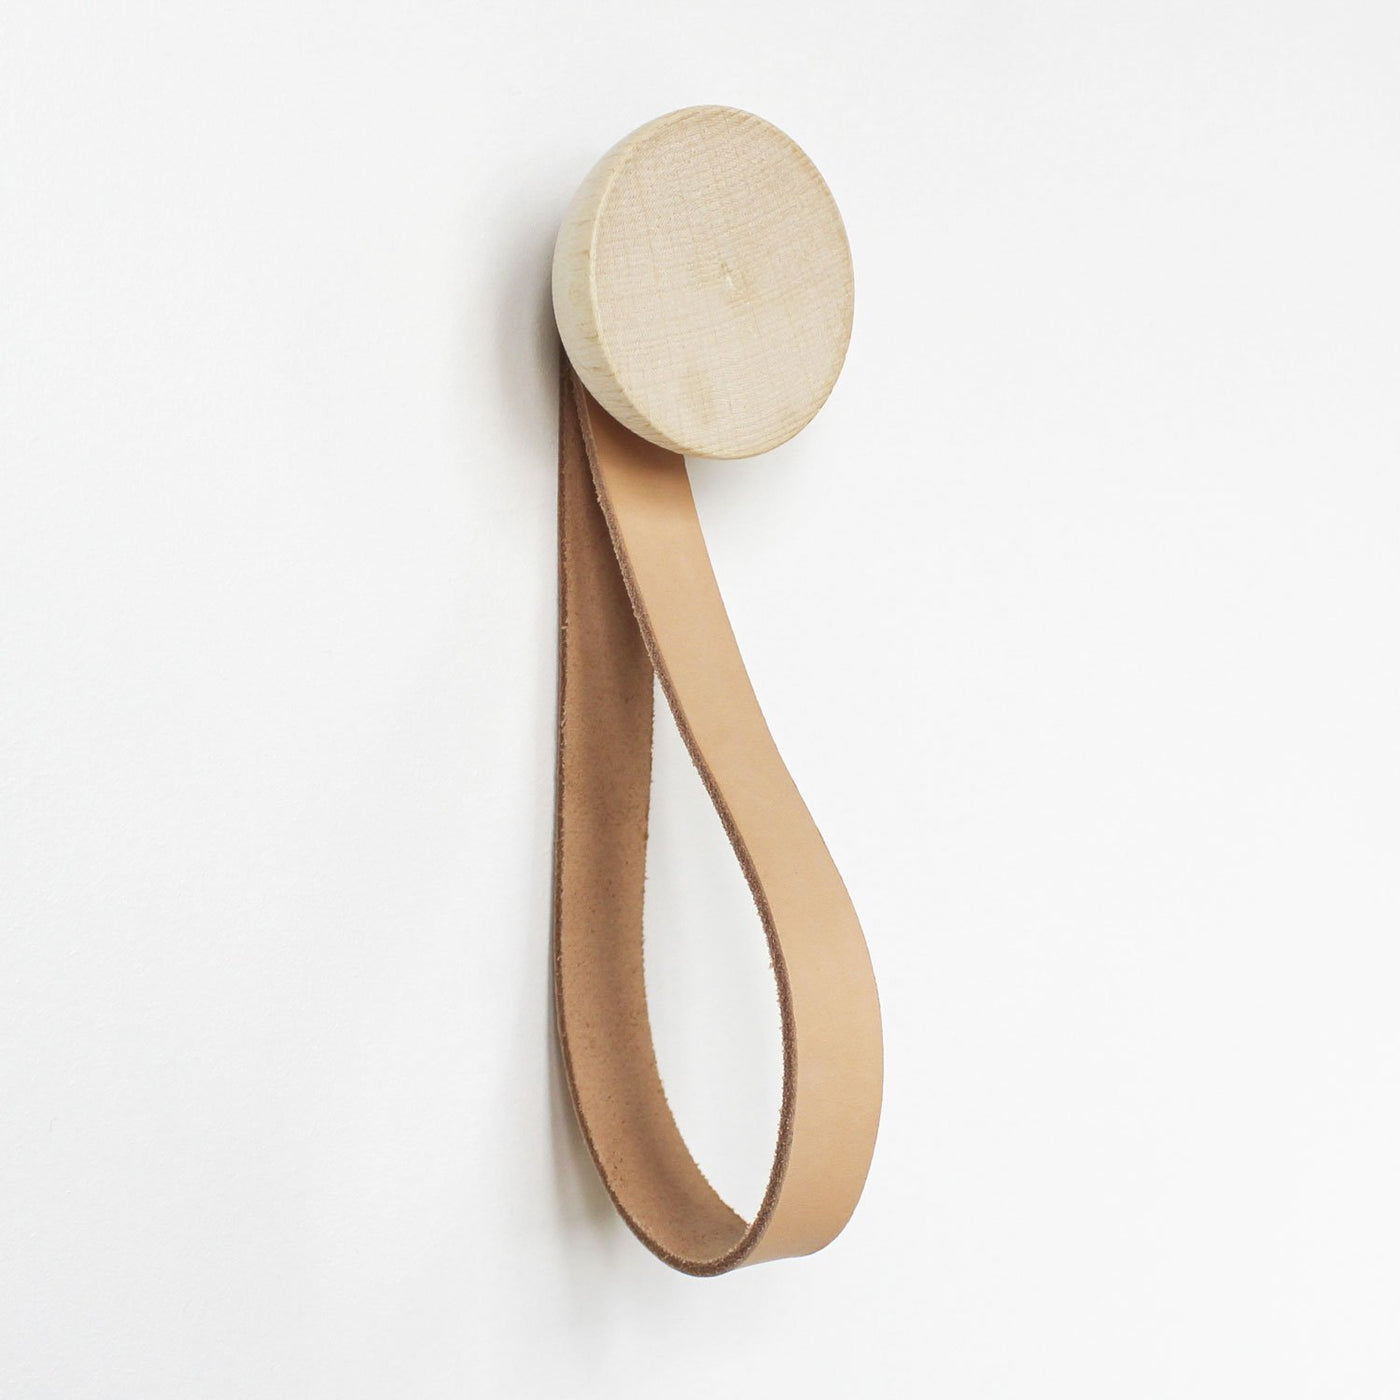 round beech wood hook with leather loop